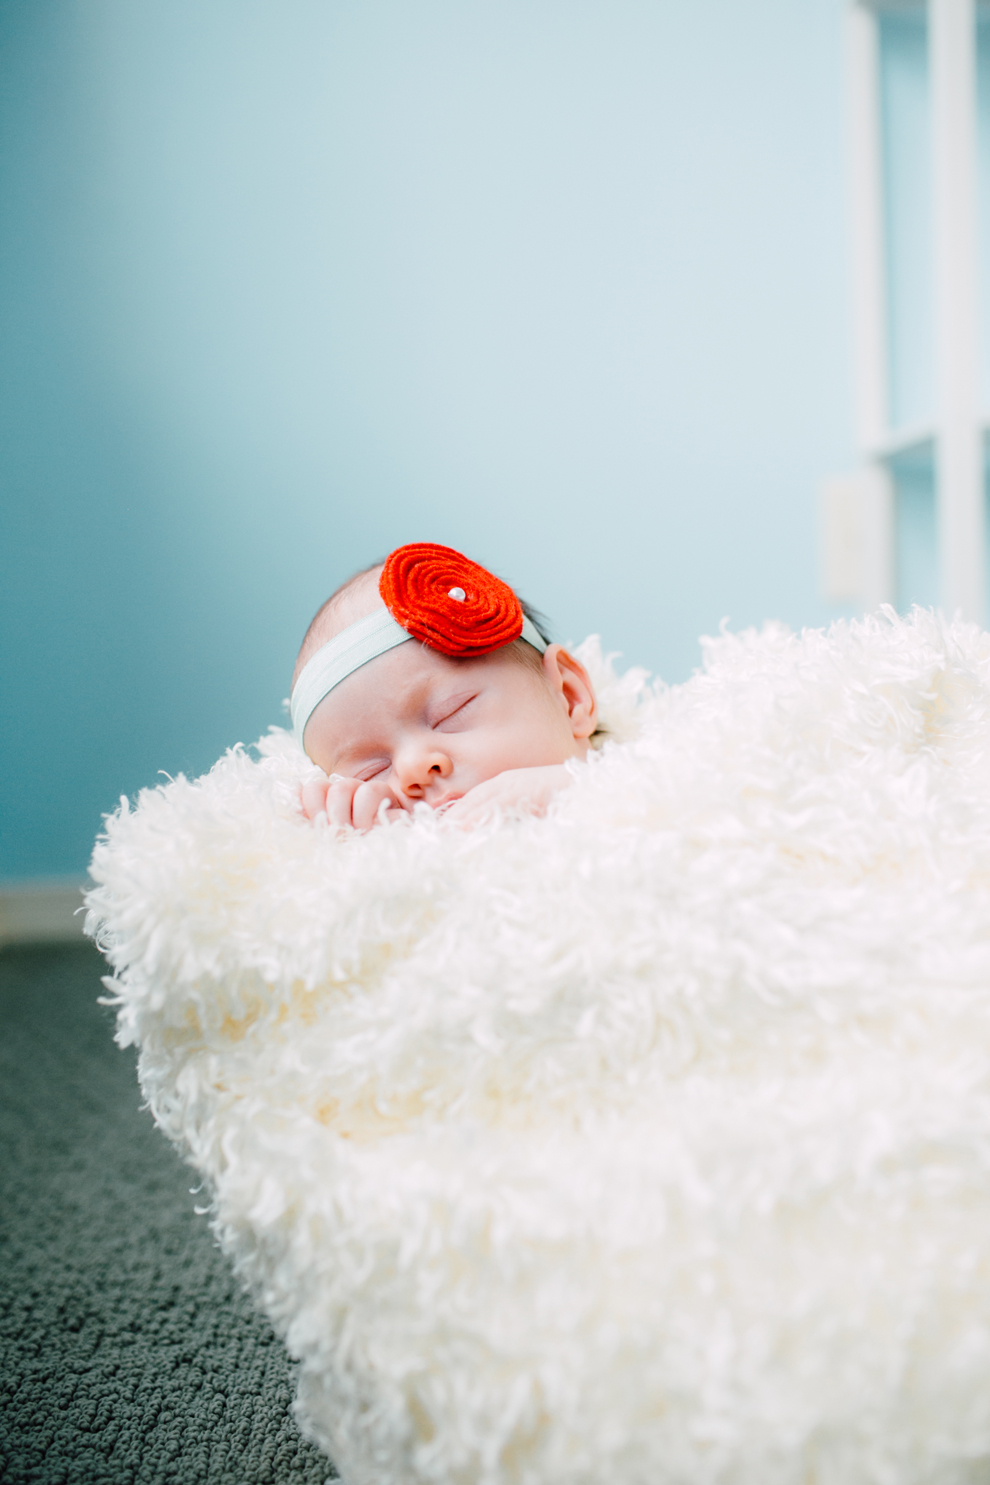 014-bellingham-newborn-photographer-photo-nursery-harper-lifestyle-session.jpg